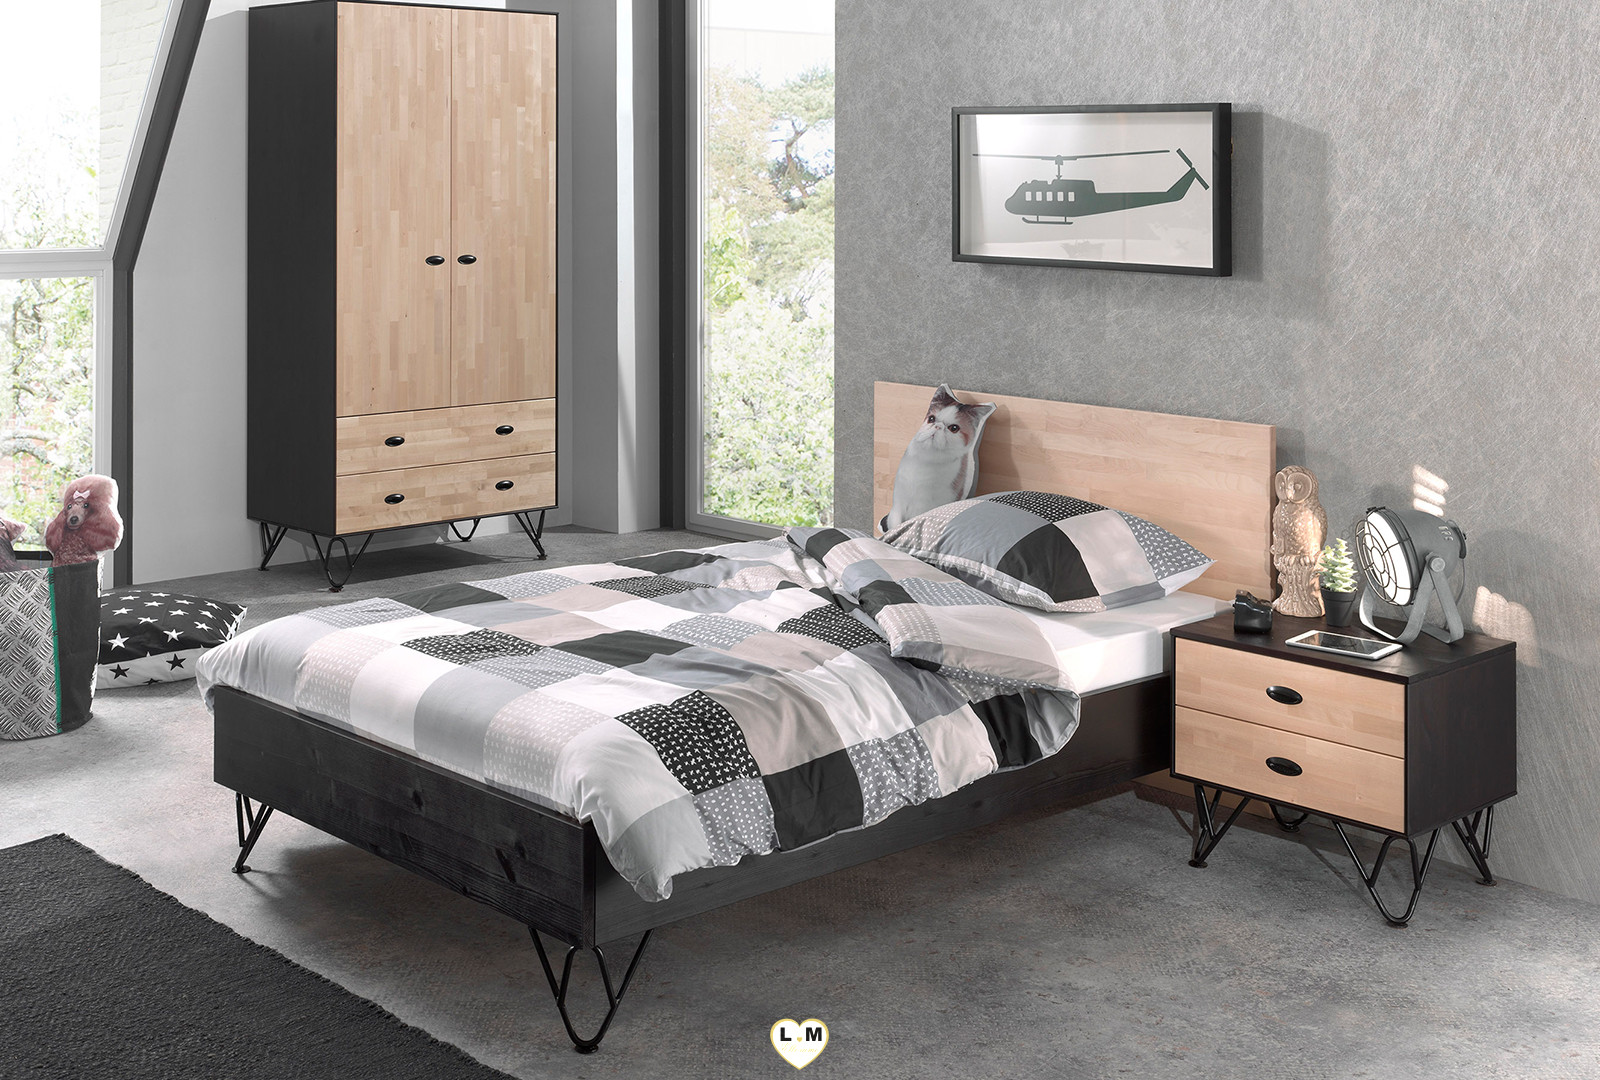 willy chambre ado l 39 armoire 2 portes lignemeuble com. Black Bedroom Furniture Sets. Home Design Ideas